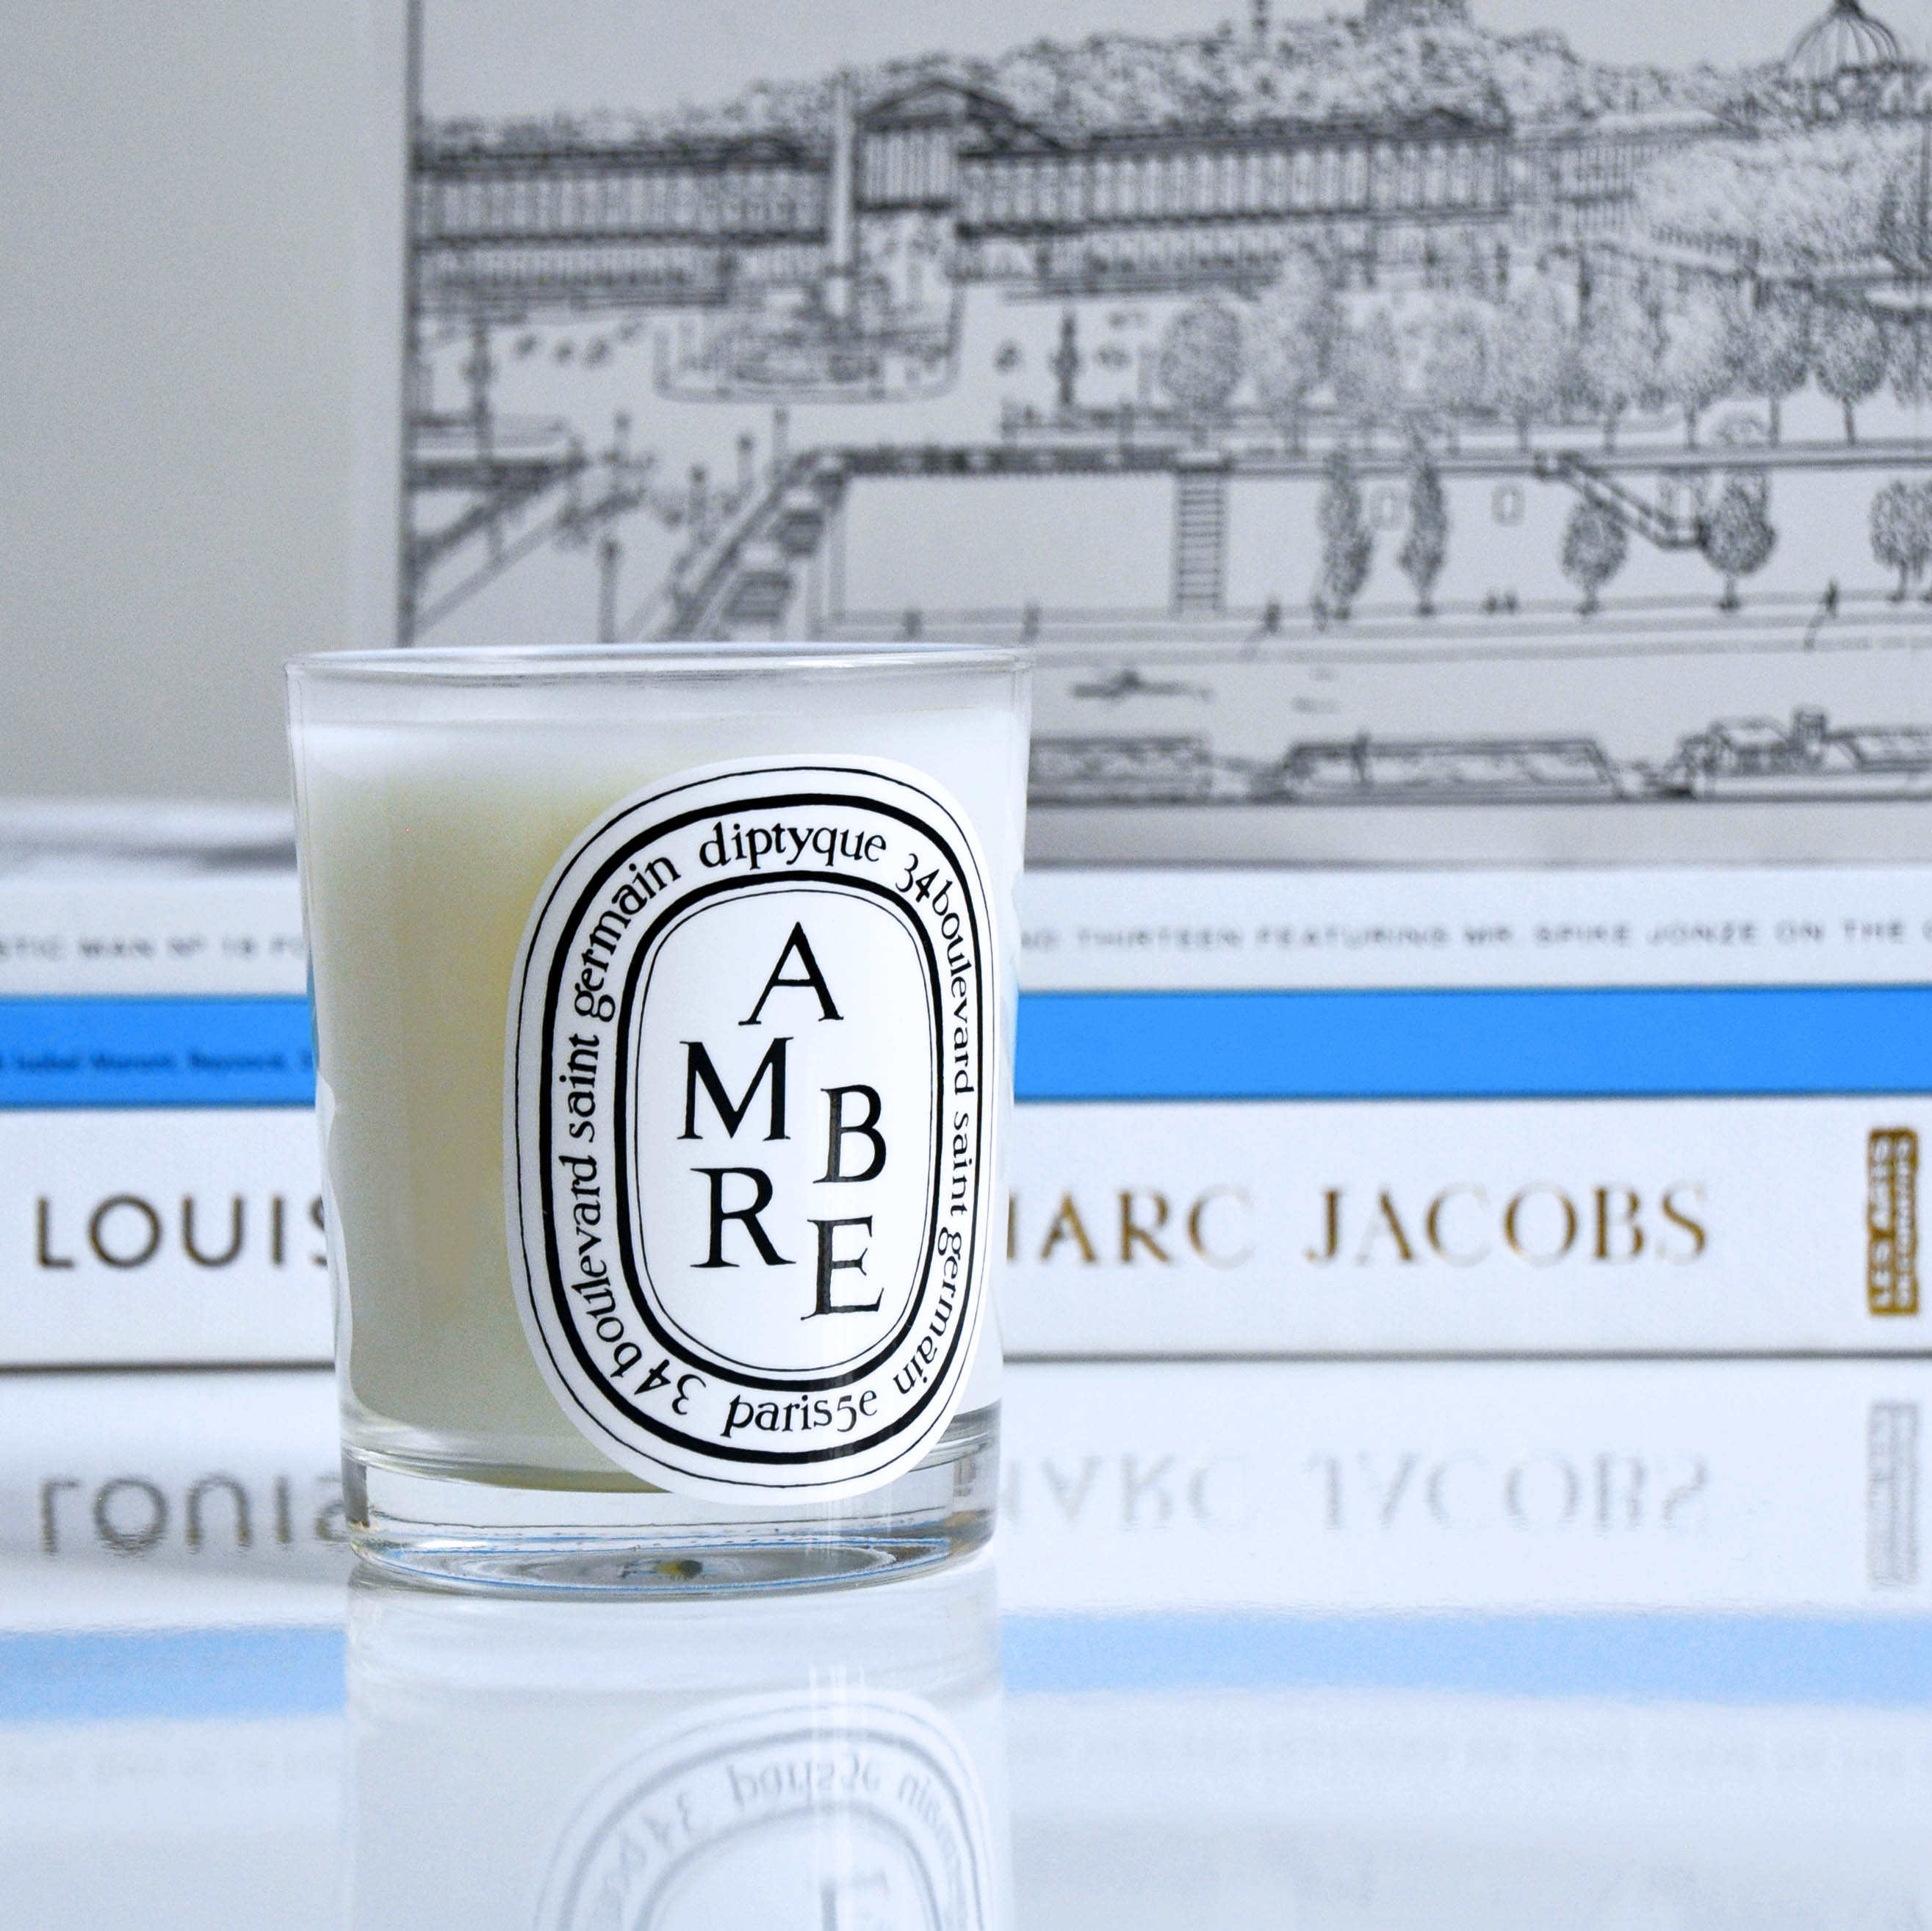 ambre-diptyque-scented-candle